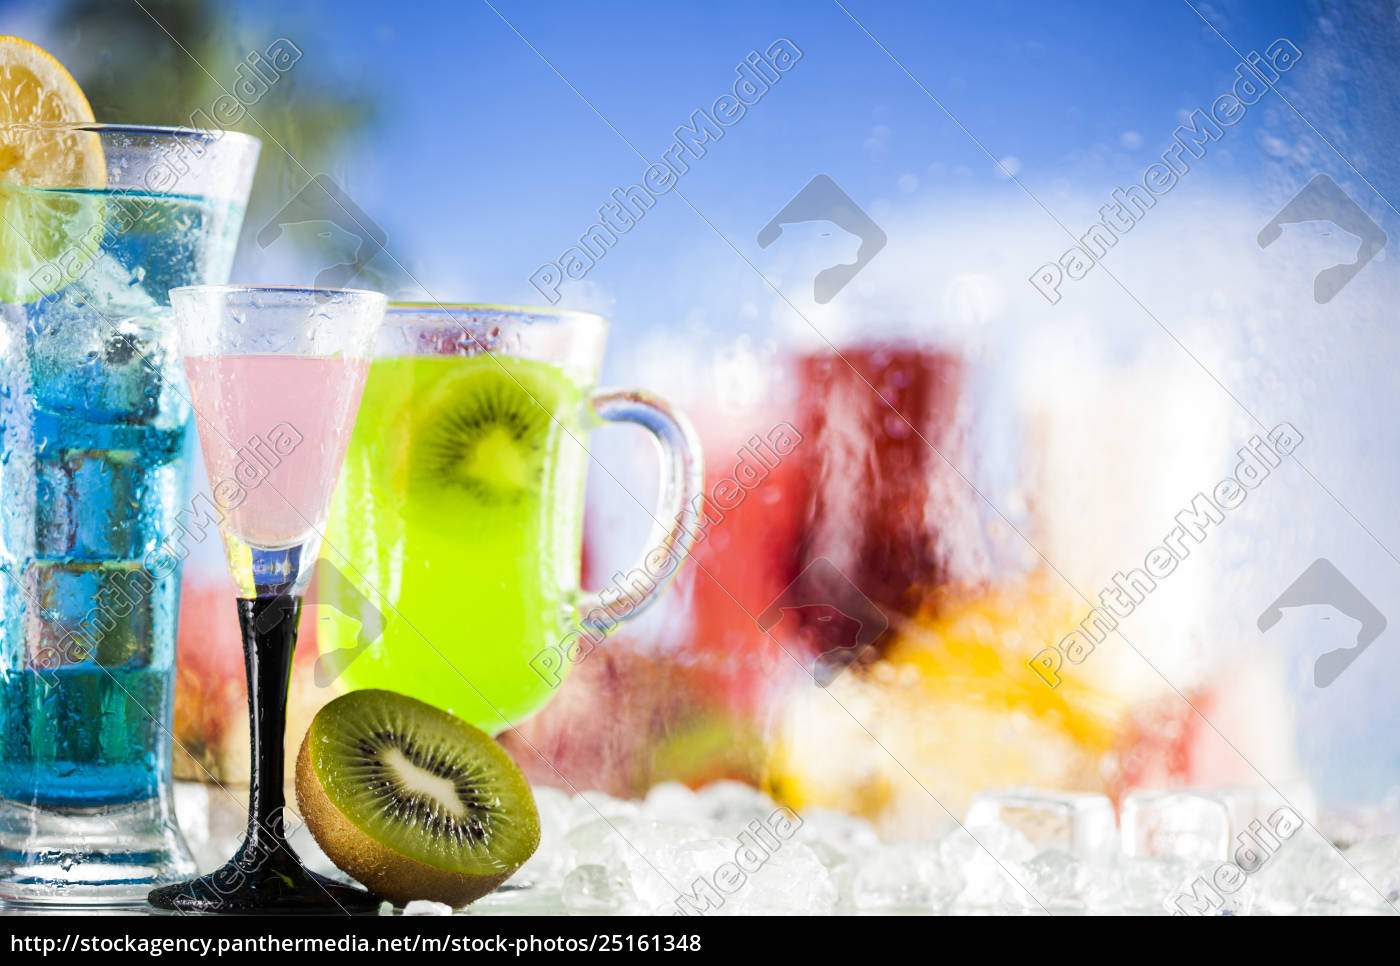 exotic, summer, drinks - 25161348